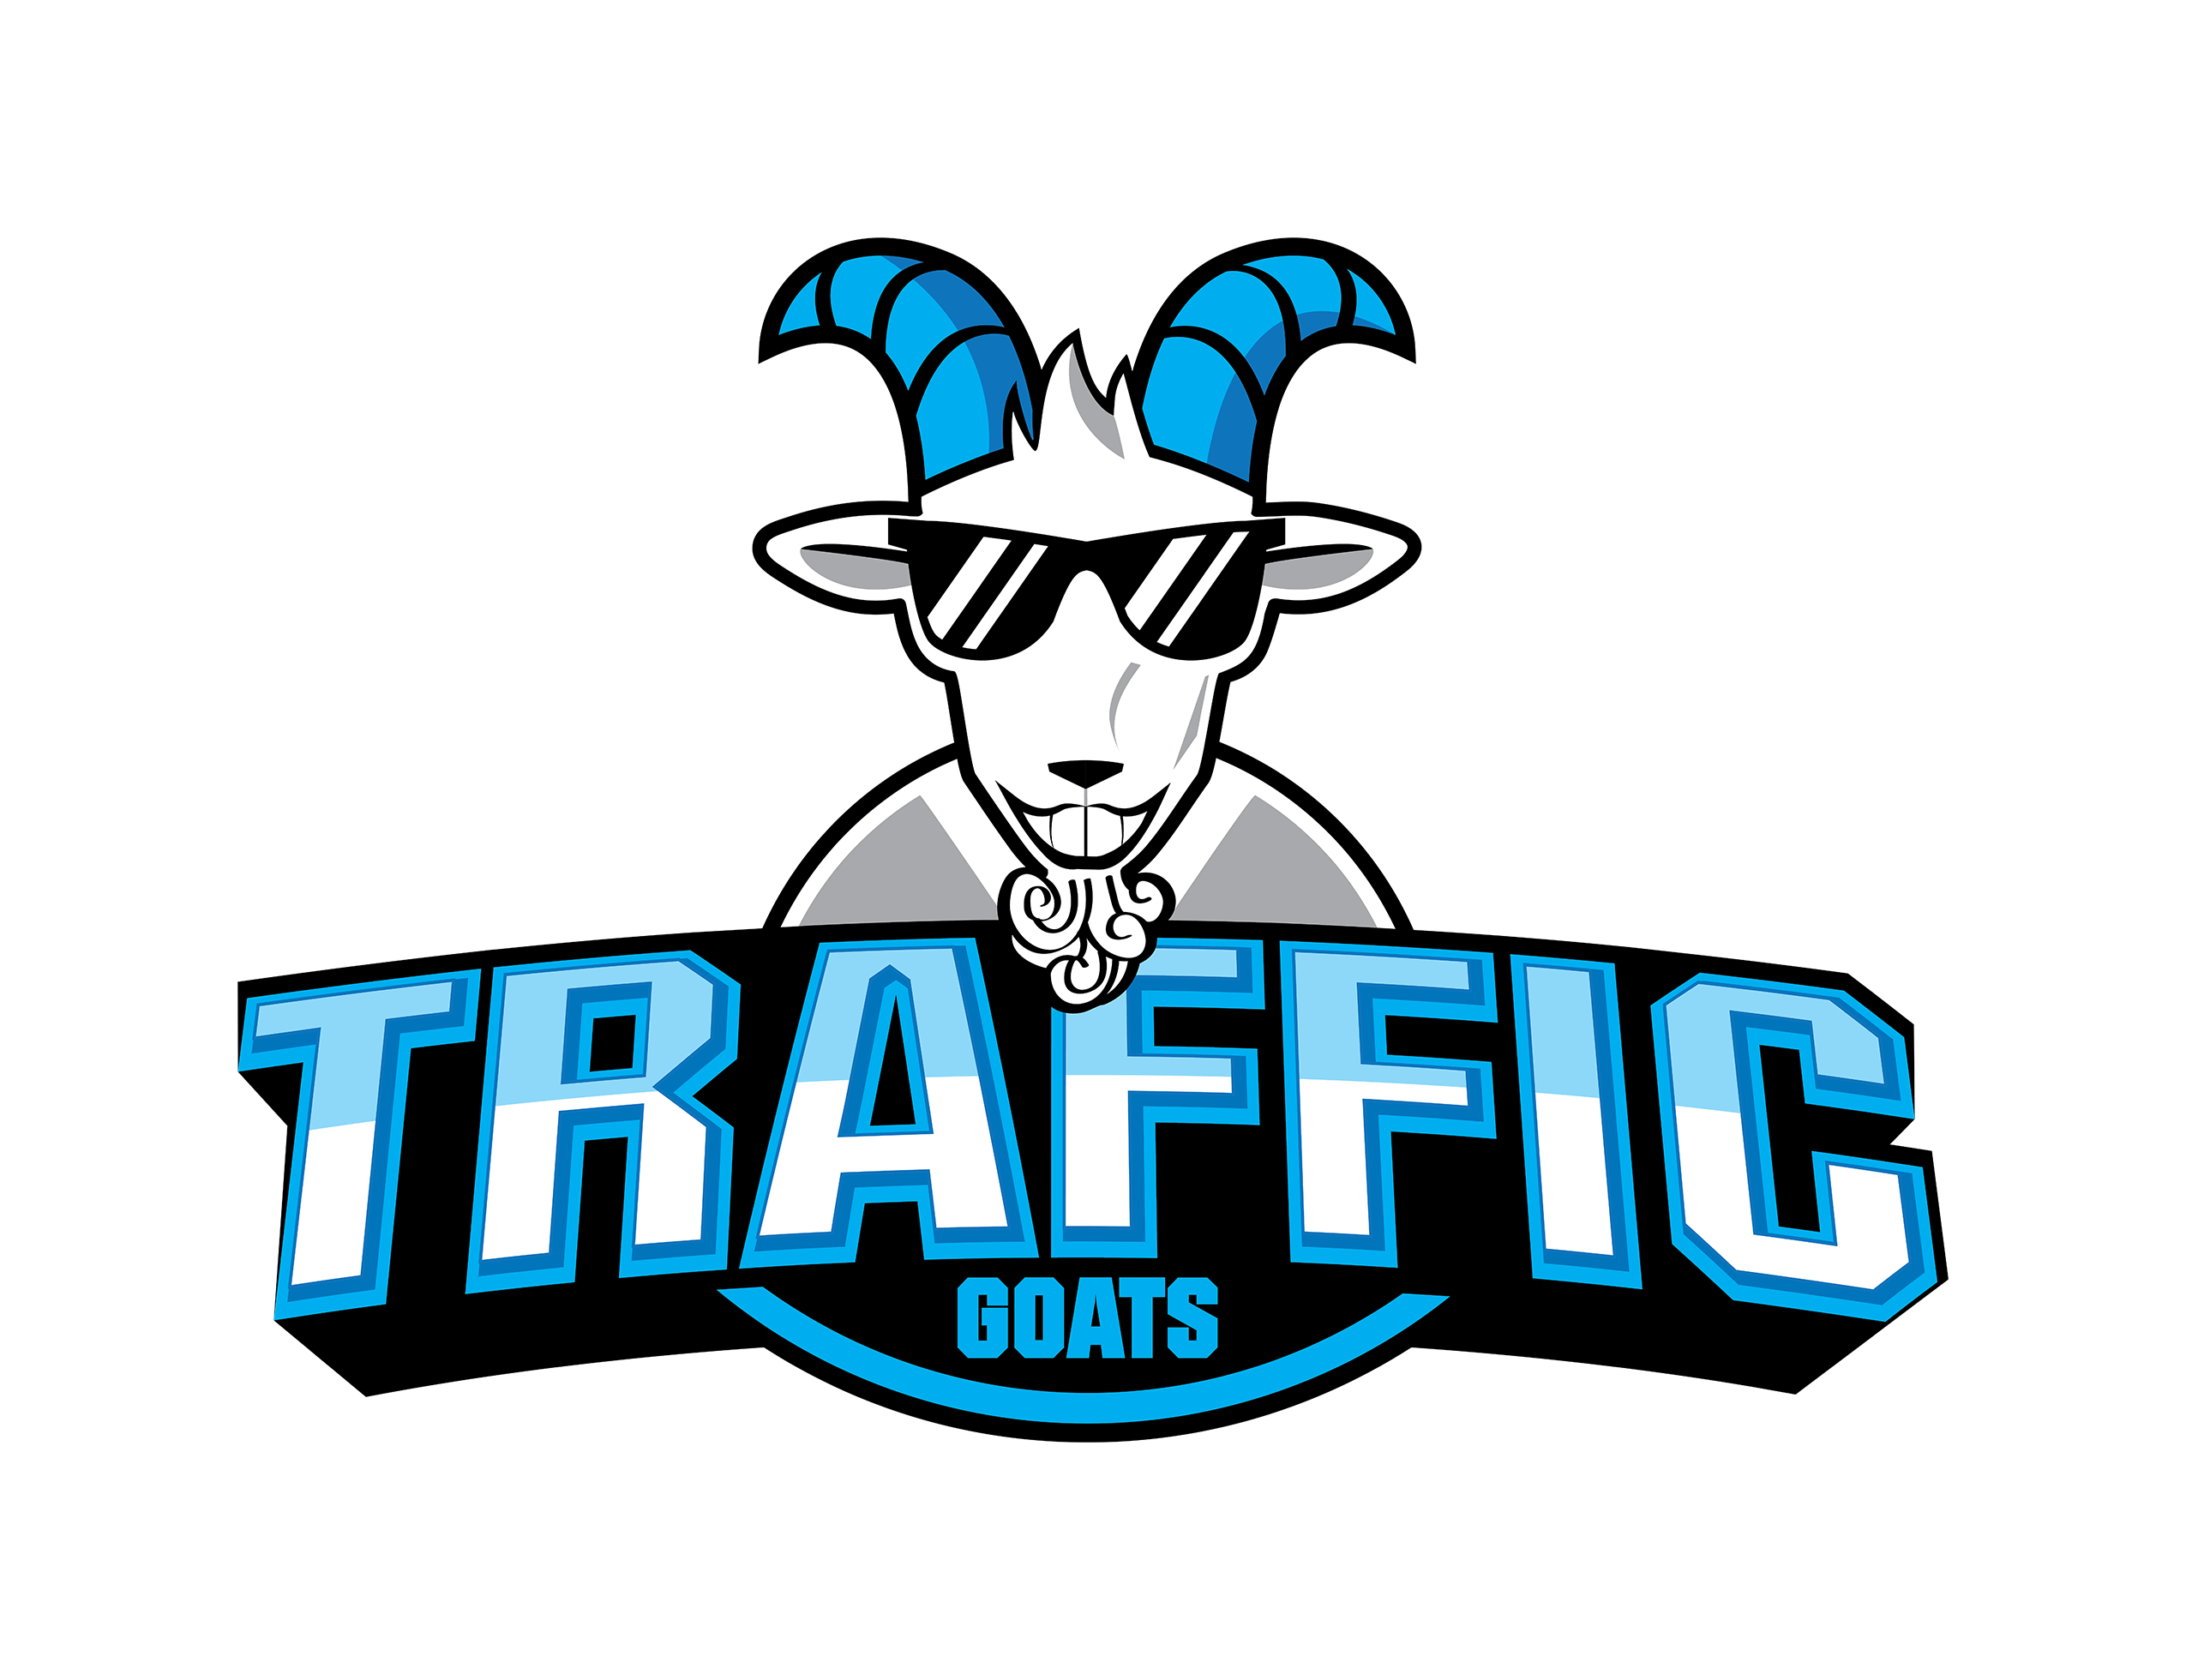 Business logo for Traffic Goats Agency Lettering Illustrator Fantastic Imago Character cool design logo from designer typography 101 visual